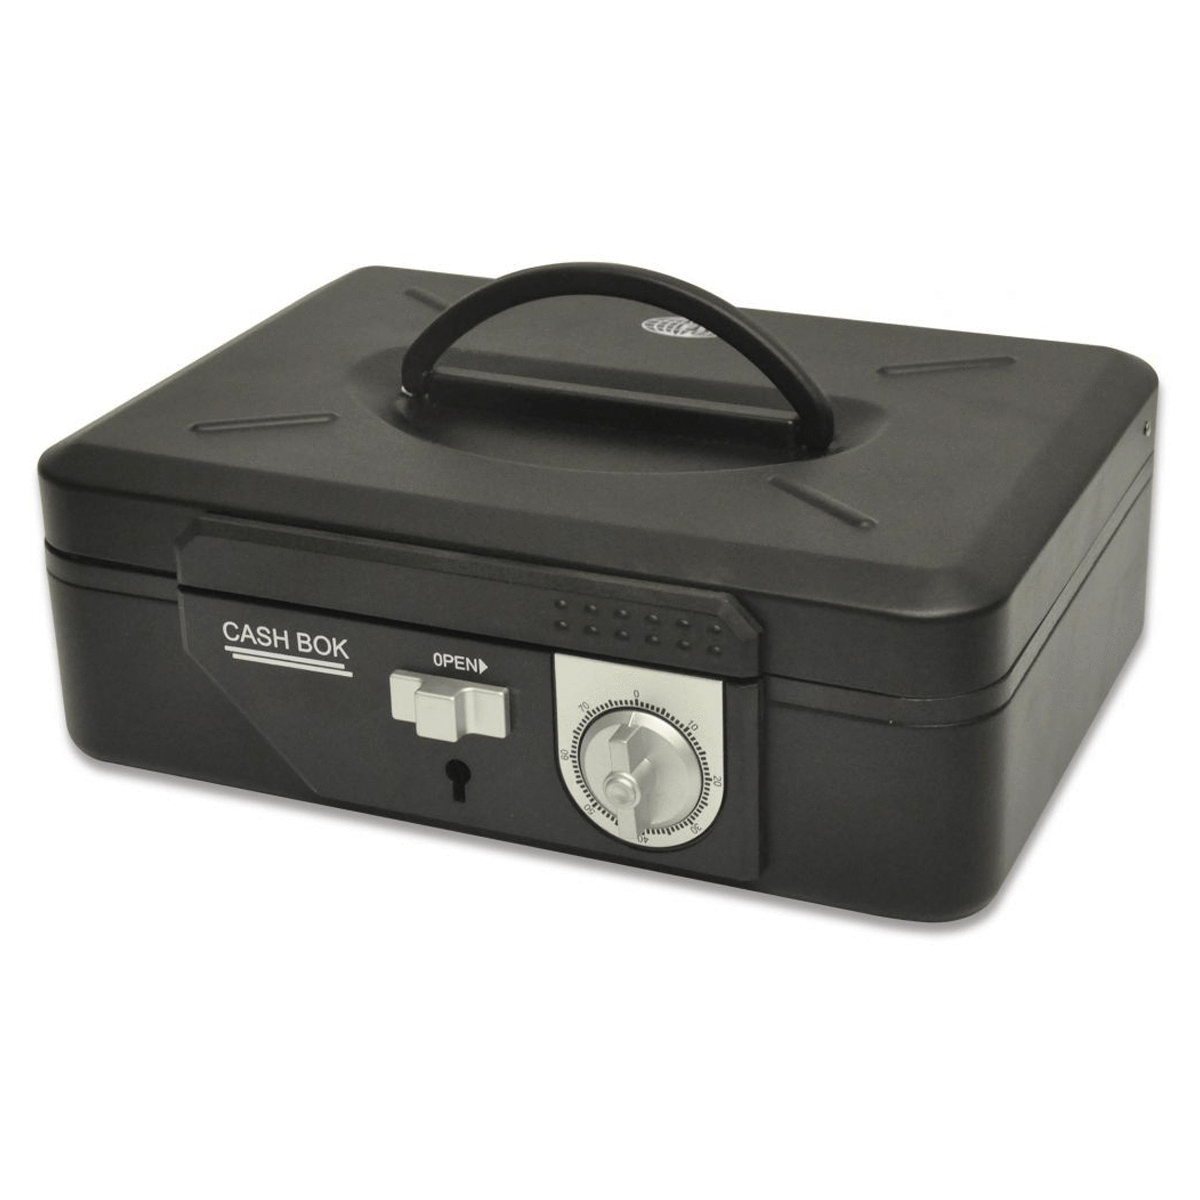 Cash Box Steel Black Color With Number / Key lock